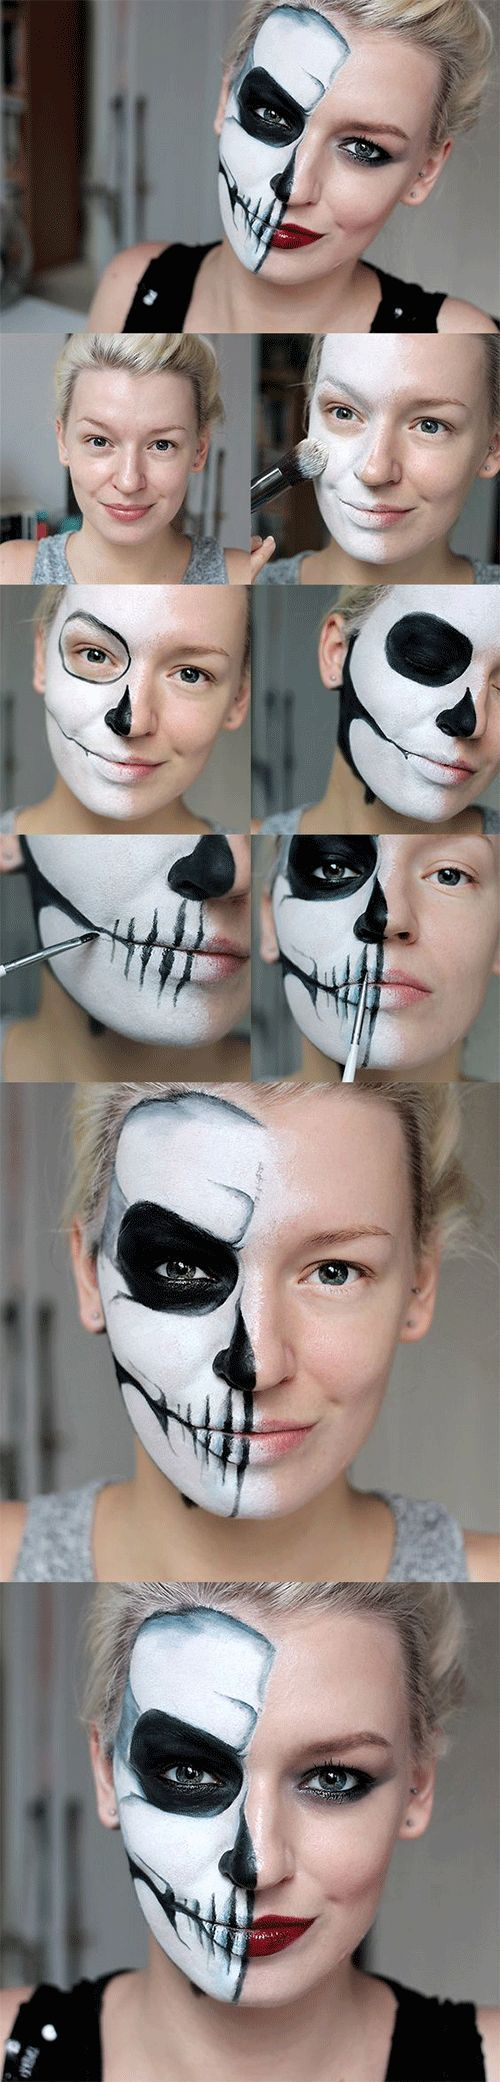 25-step-by-step-halloween-makeup-tutorials-for-beginners-2016-9